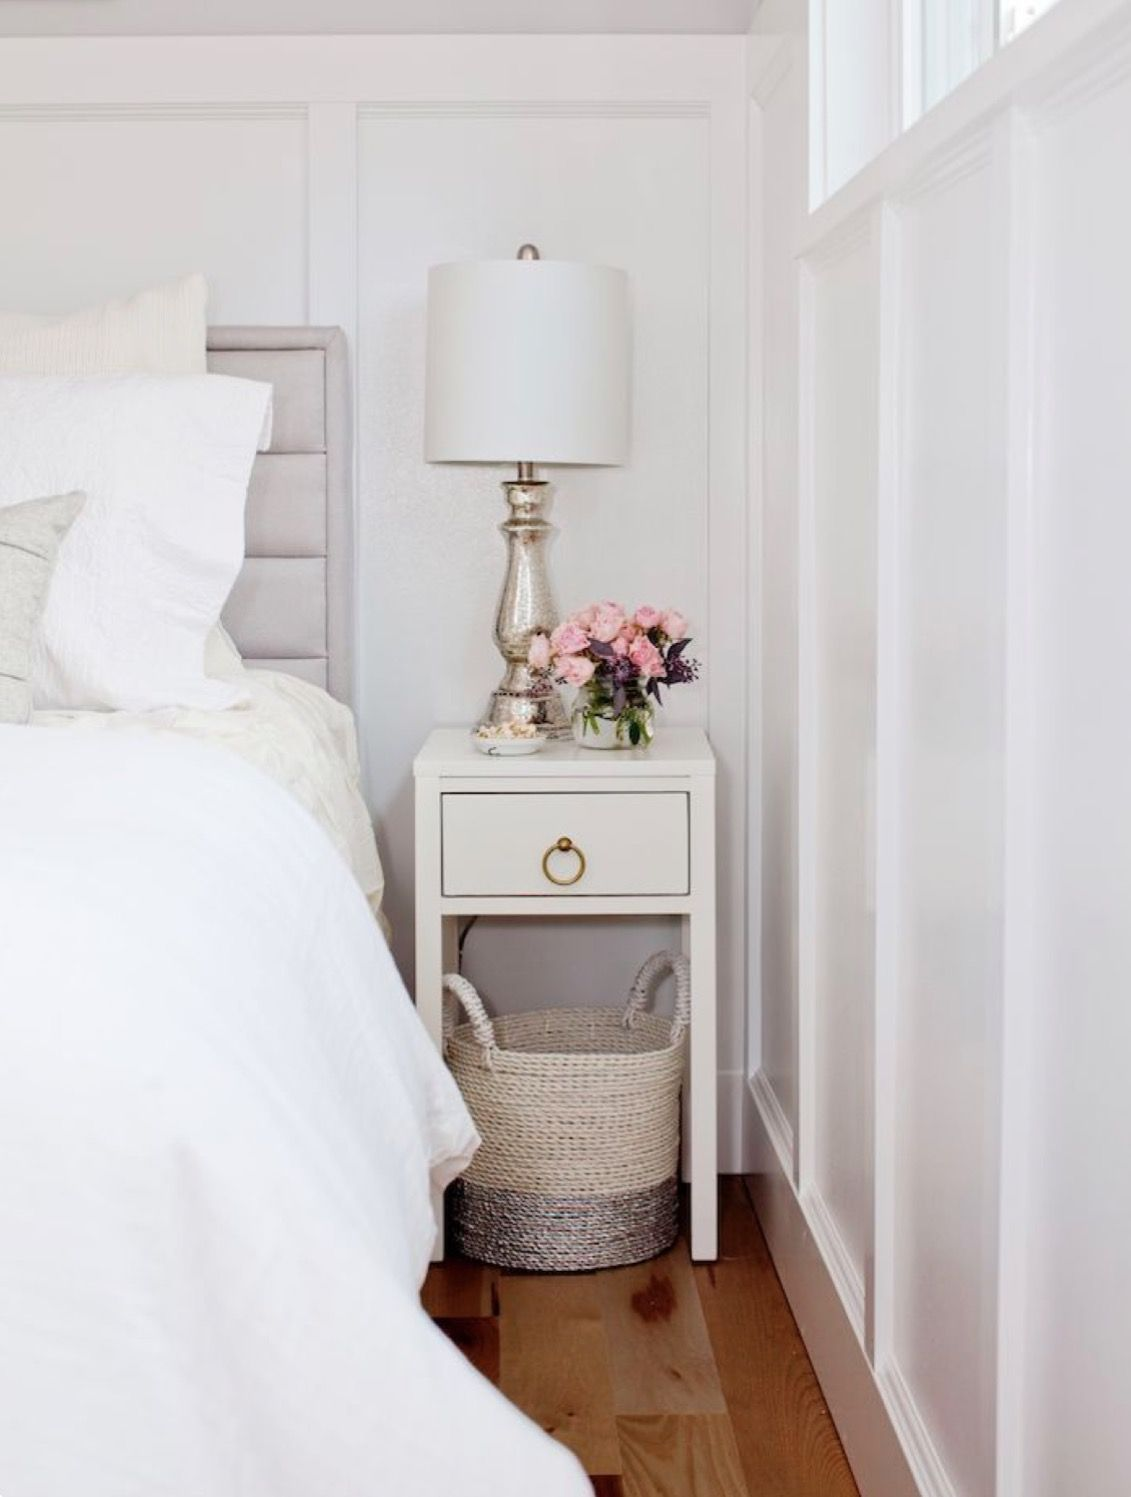 Small Bedside Table Ideas: Pin By Brunettetemi On The Interior .